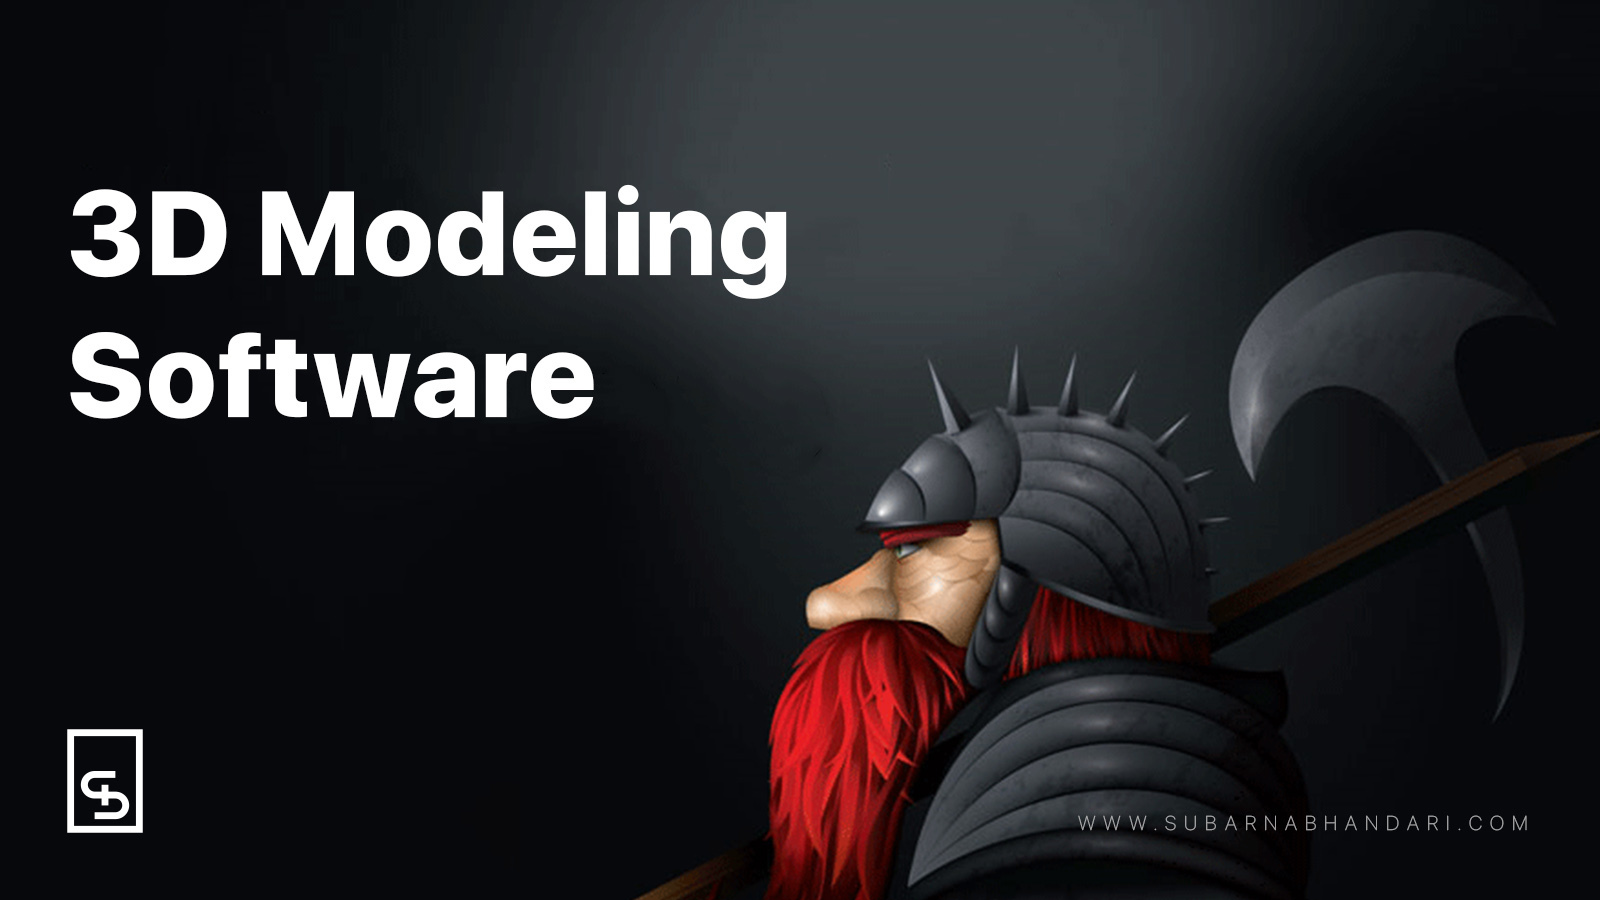 The best 3D modeling software in 2020